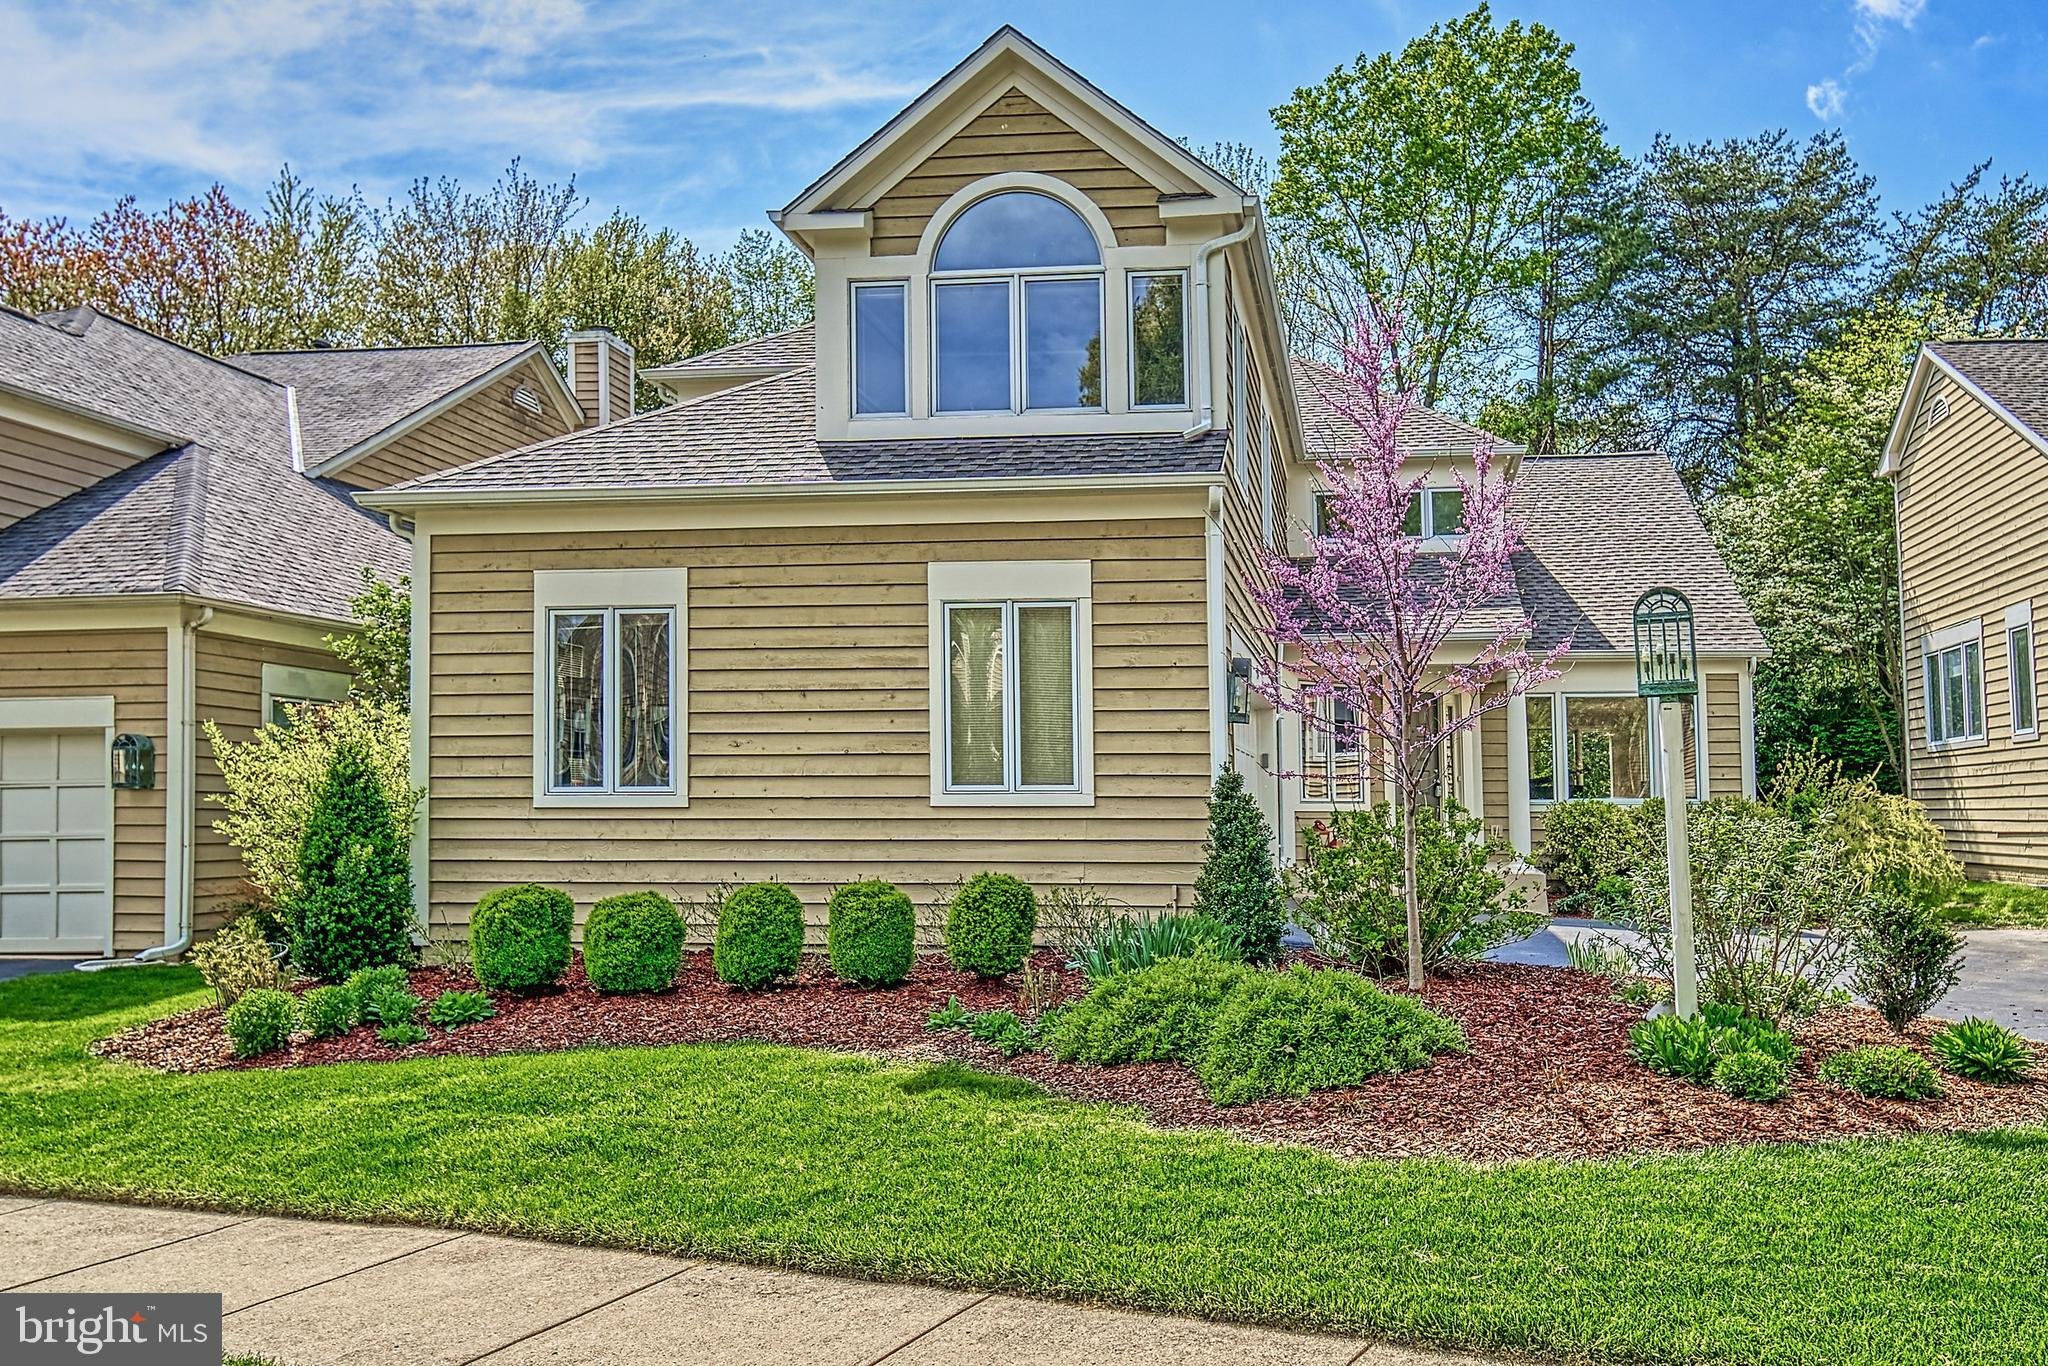 Enjoy living in this spacious 5 bedroom/3.5 bath contemporary home in Reston that has been tastefull